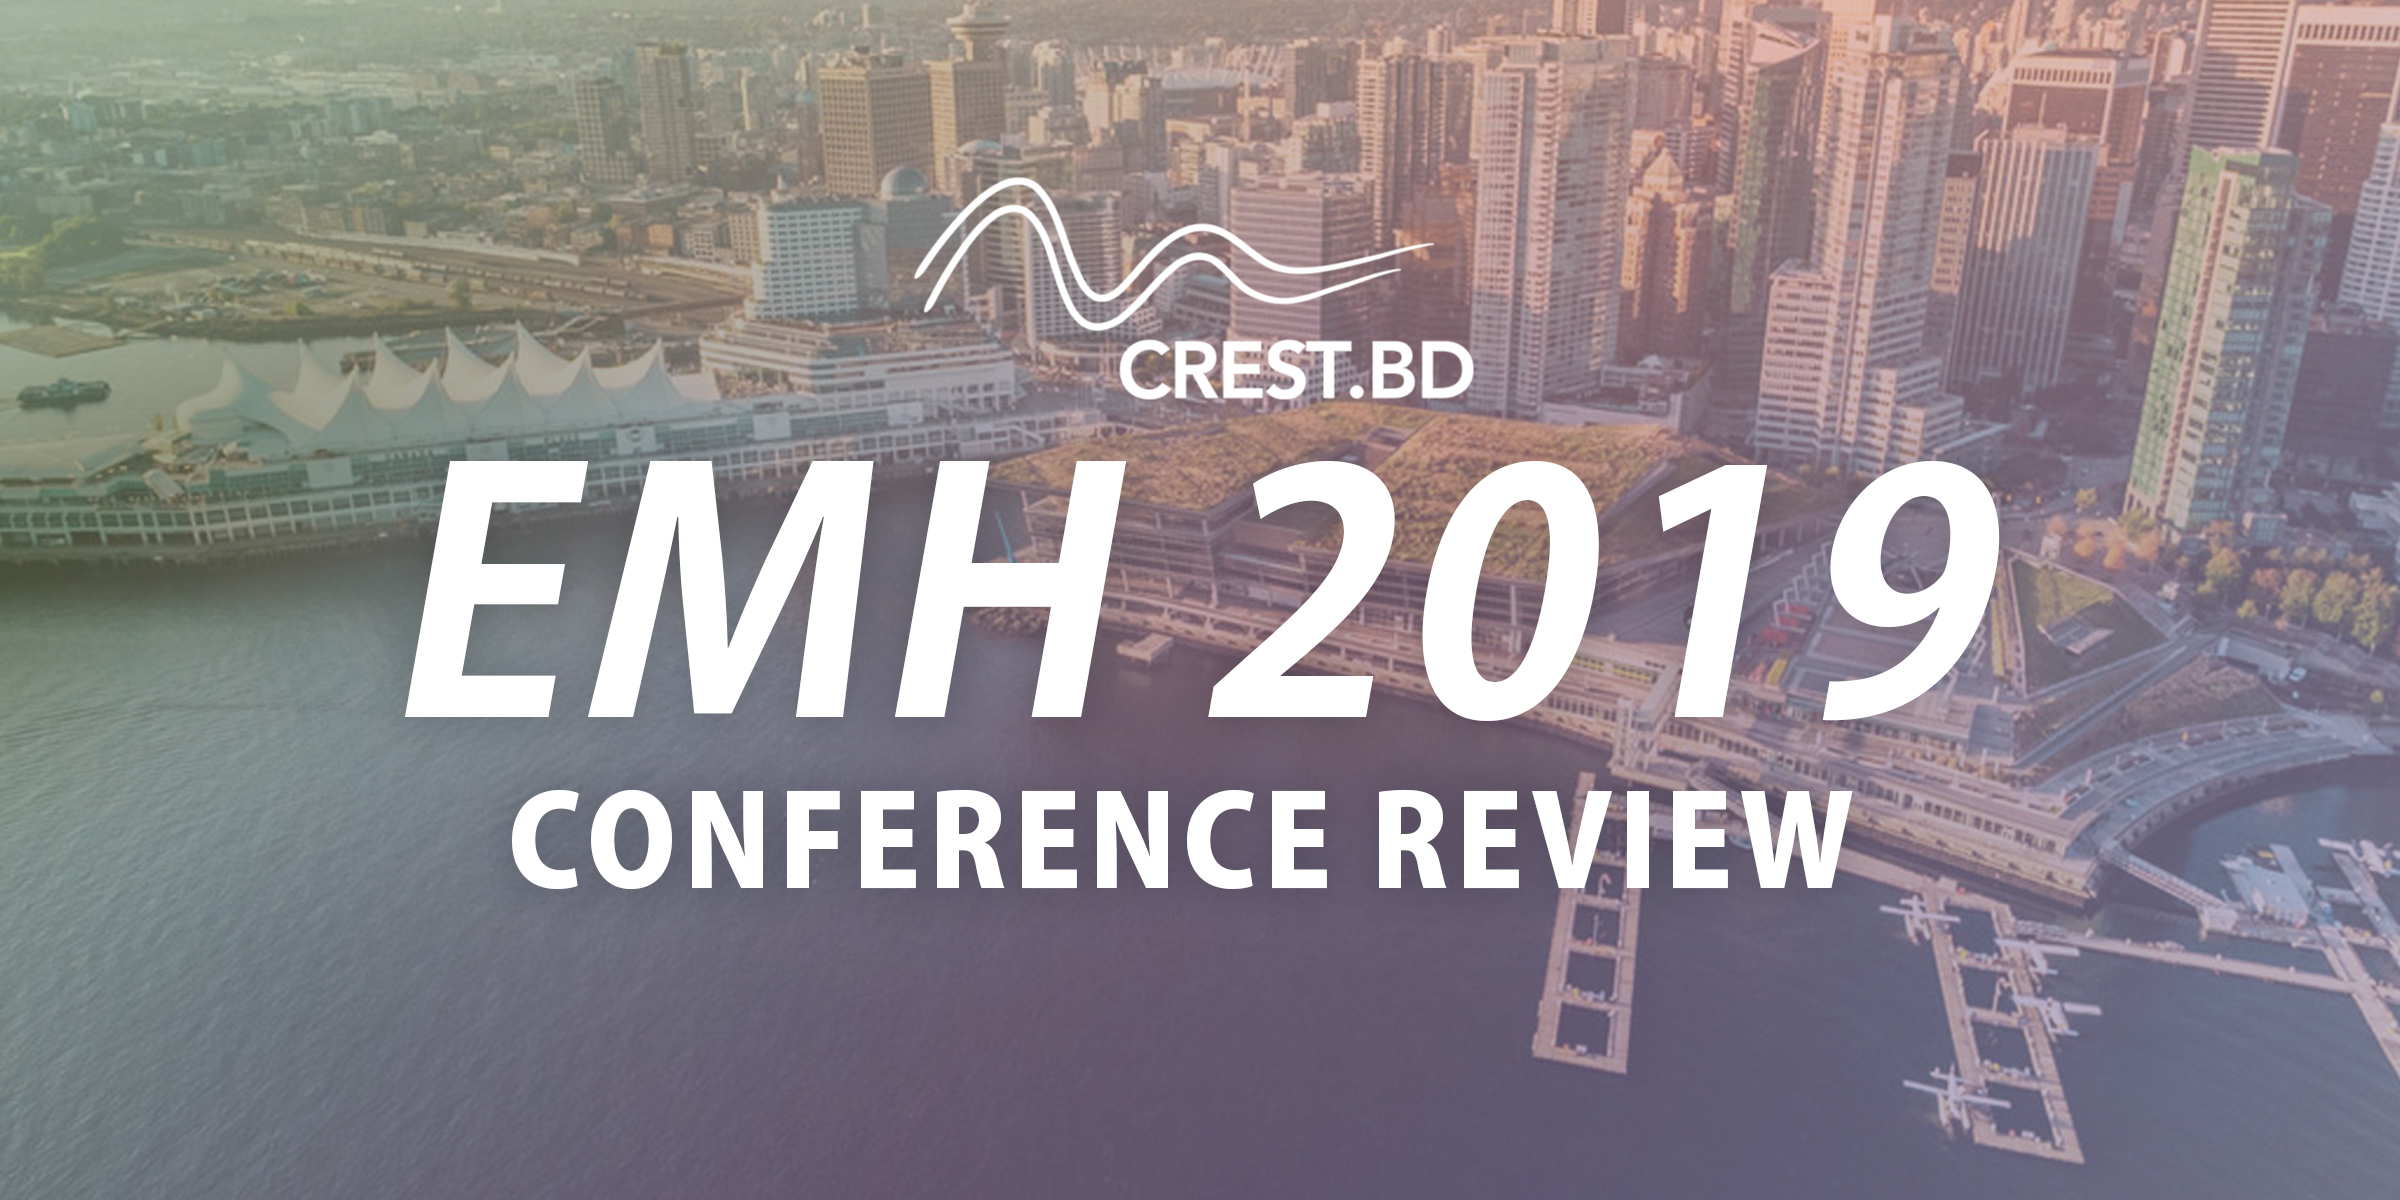 CREST.BD Review: E-Mental Health Conference 2019 (Day 1)